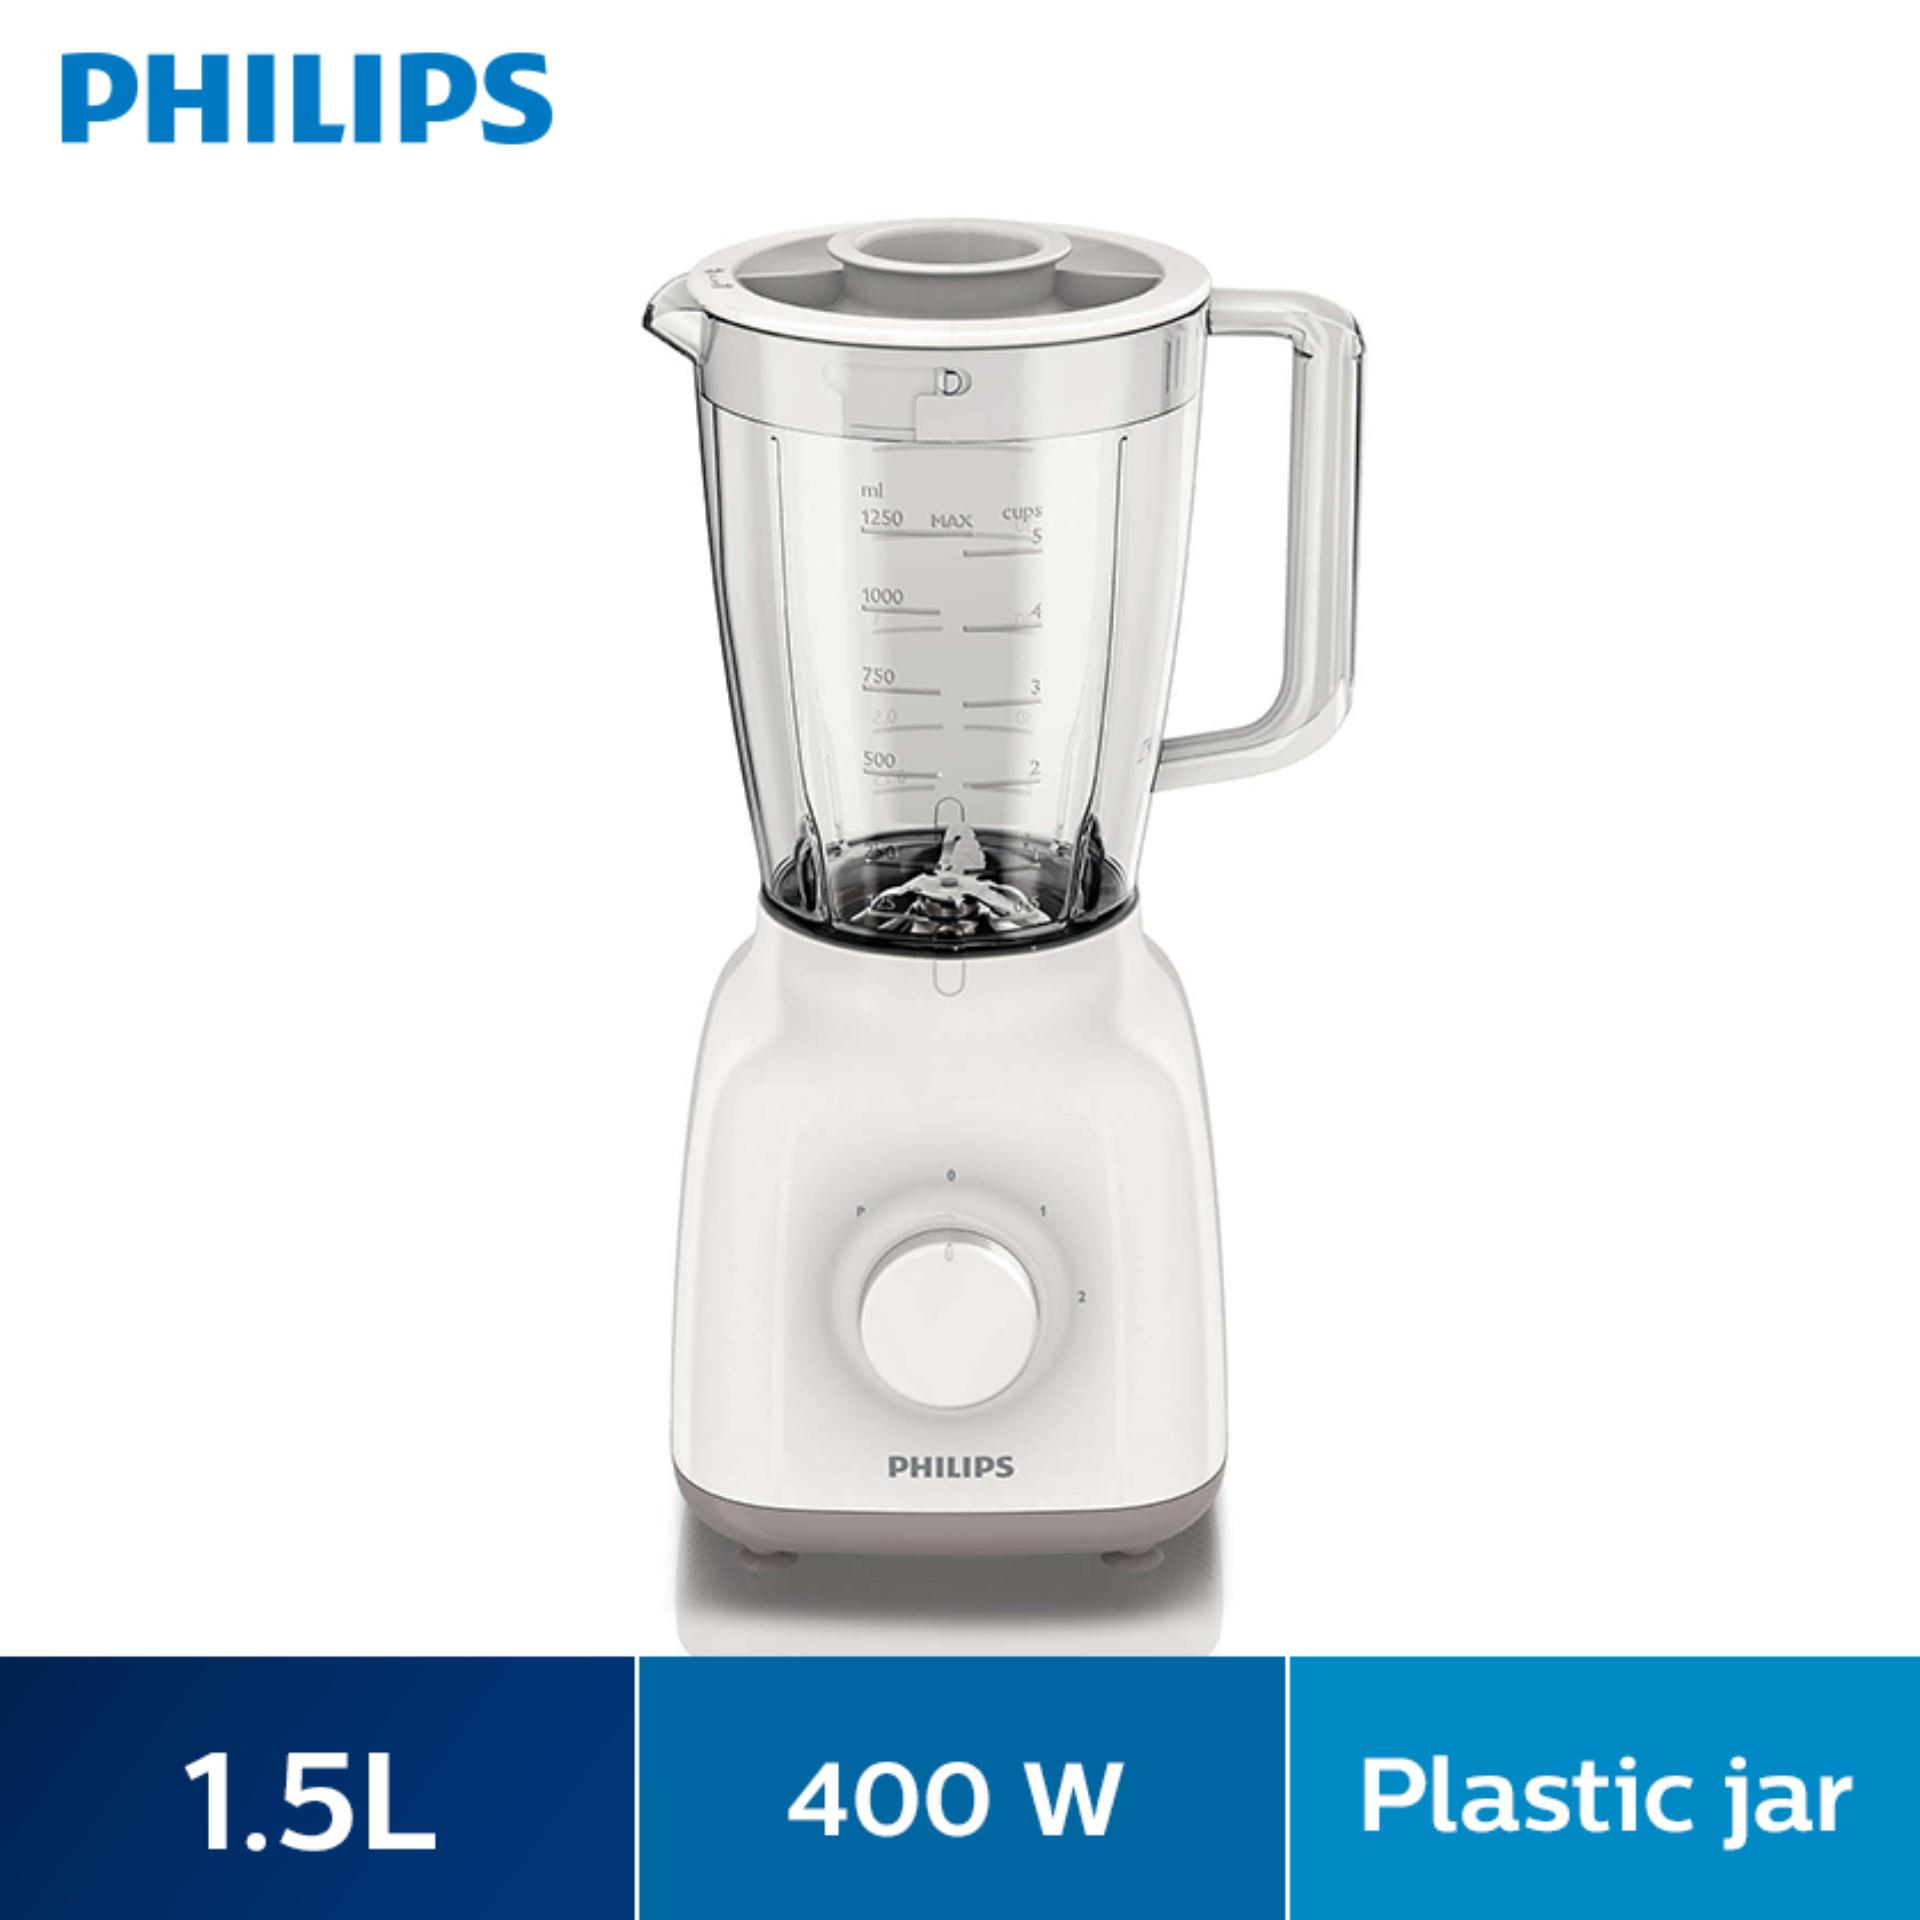 Philips Philippines Philips Blender For Sale Prices Reviews